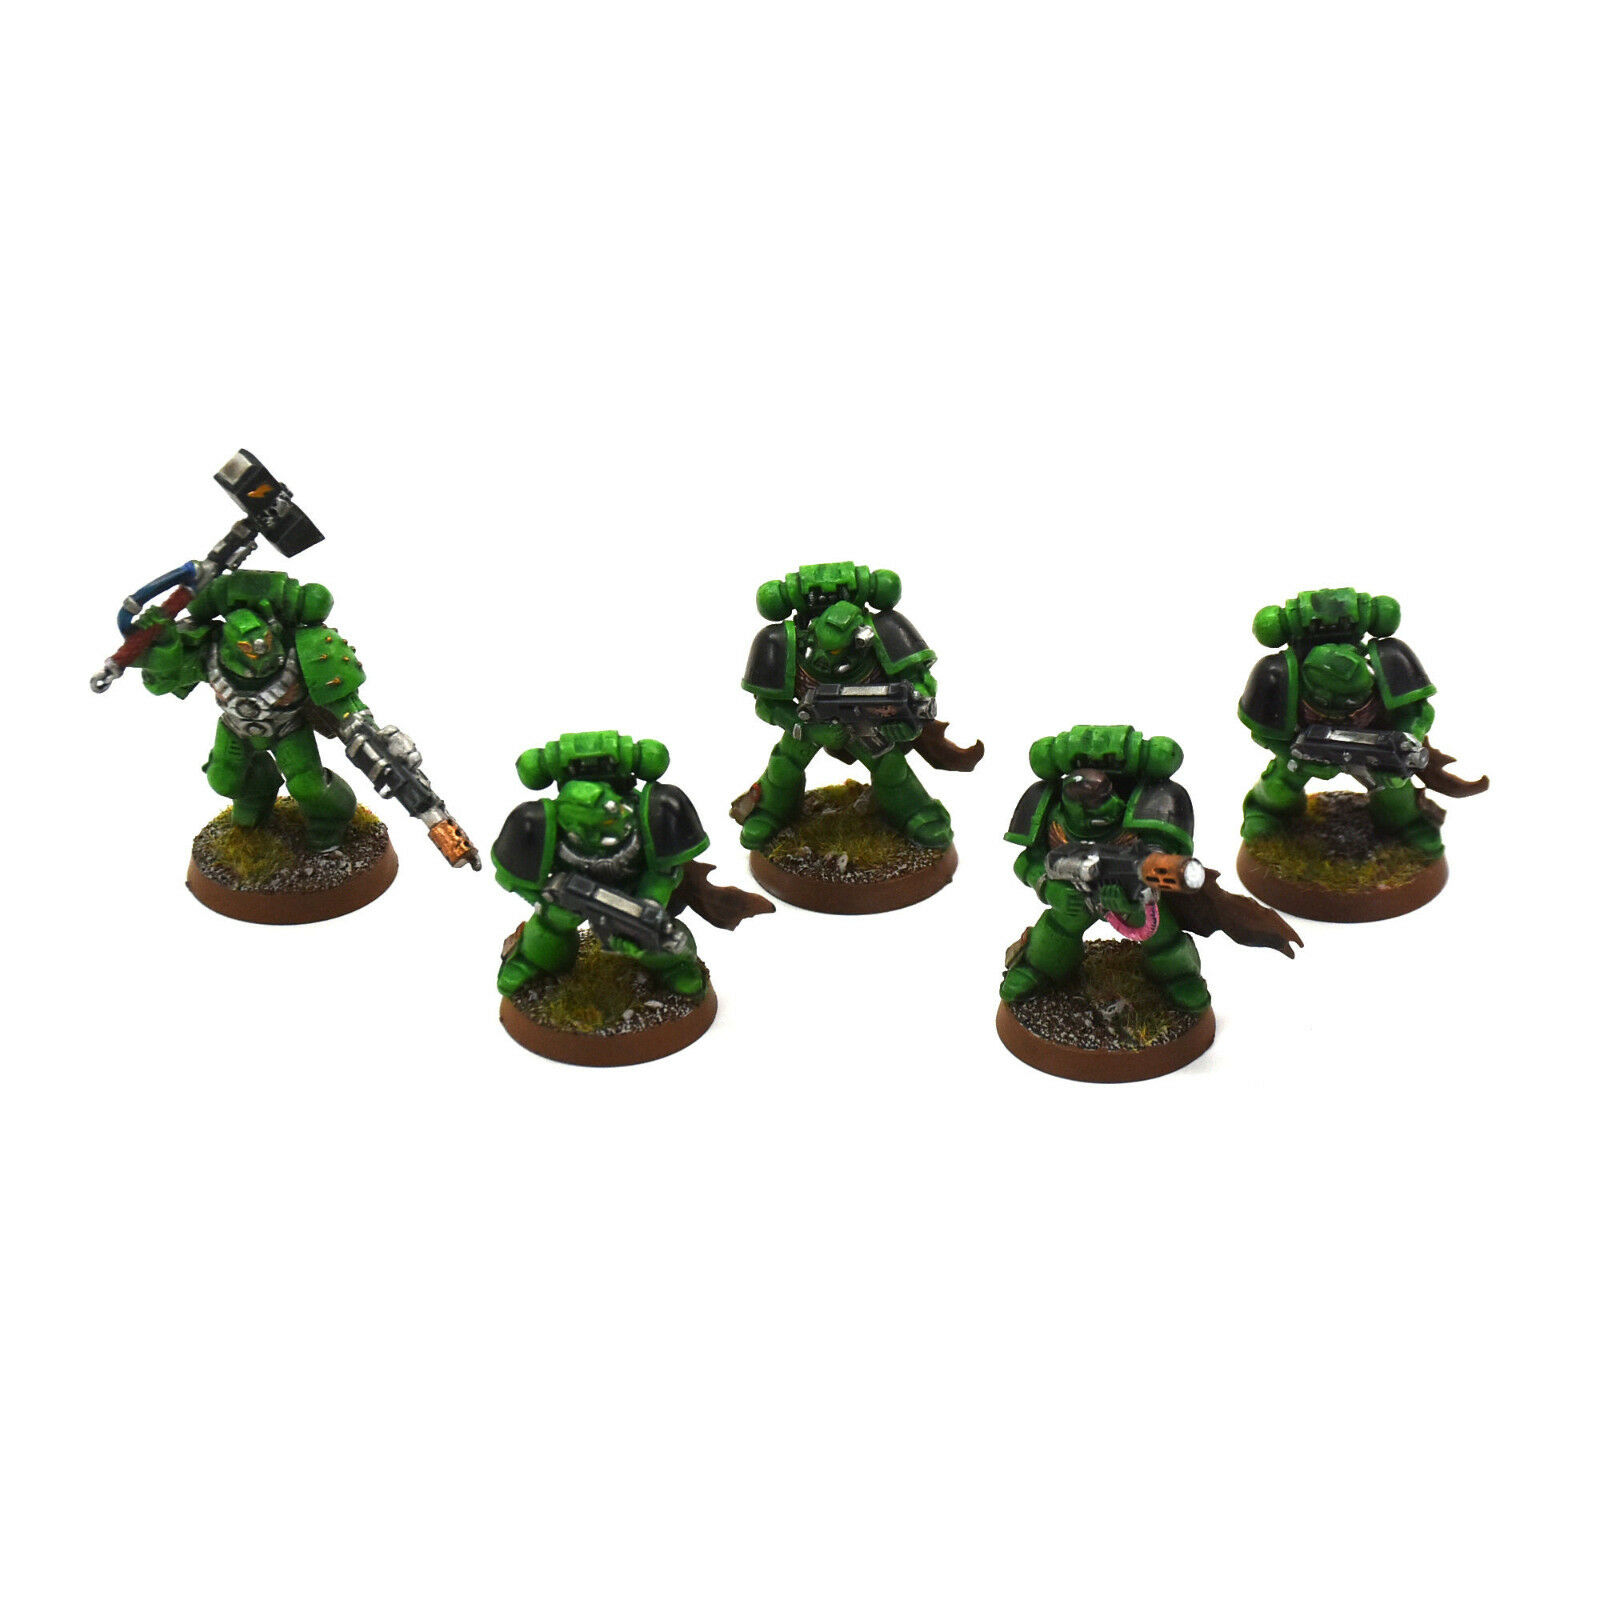 SPACE MARINES 5 tactical marines Congreened Salamanders PRO PAINTED Squad 40K